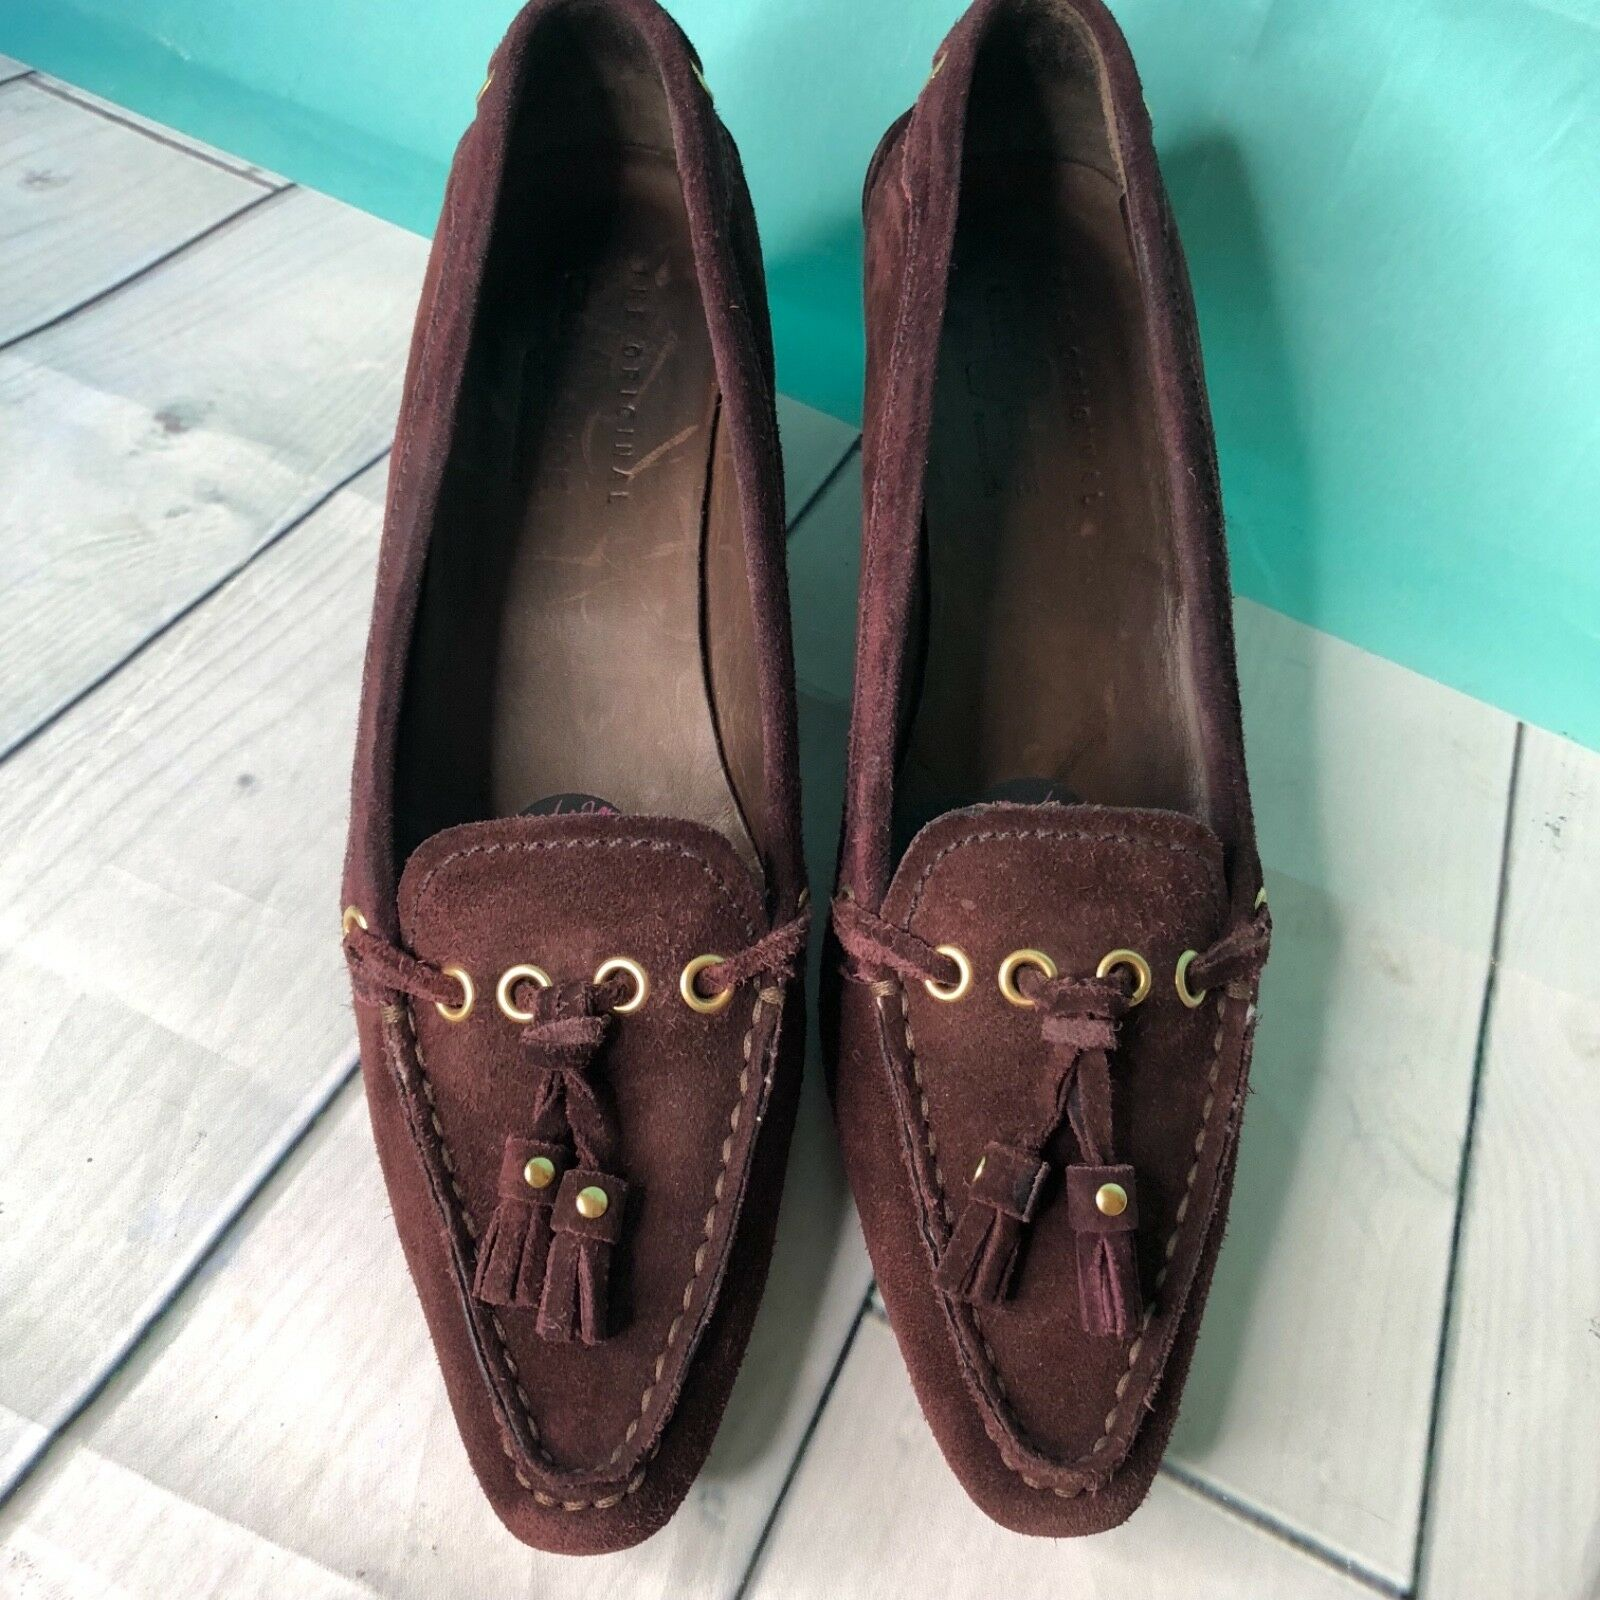 The Original Car schuhe braun Suede Bow Accent Almond Toe Toe Toe Heeled loafers sz 7 601a6e